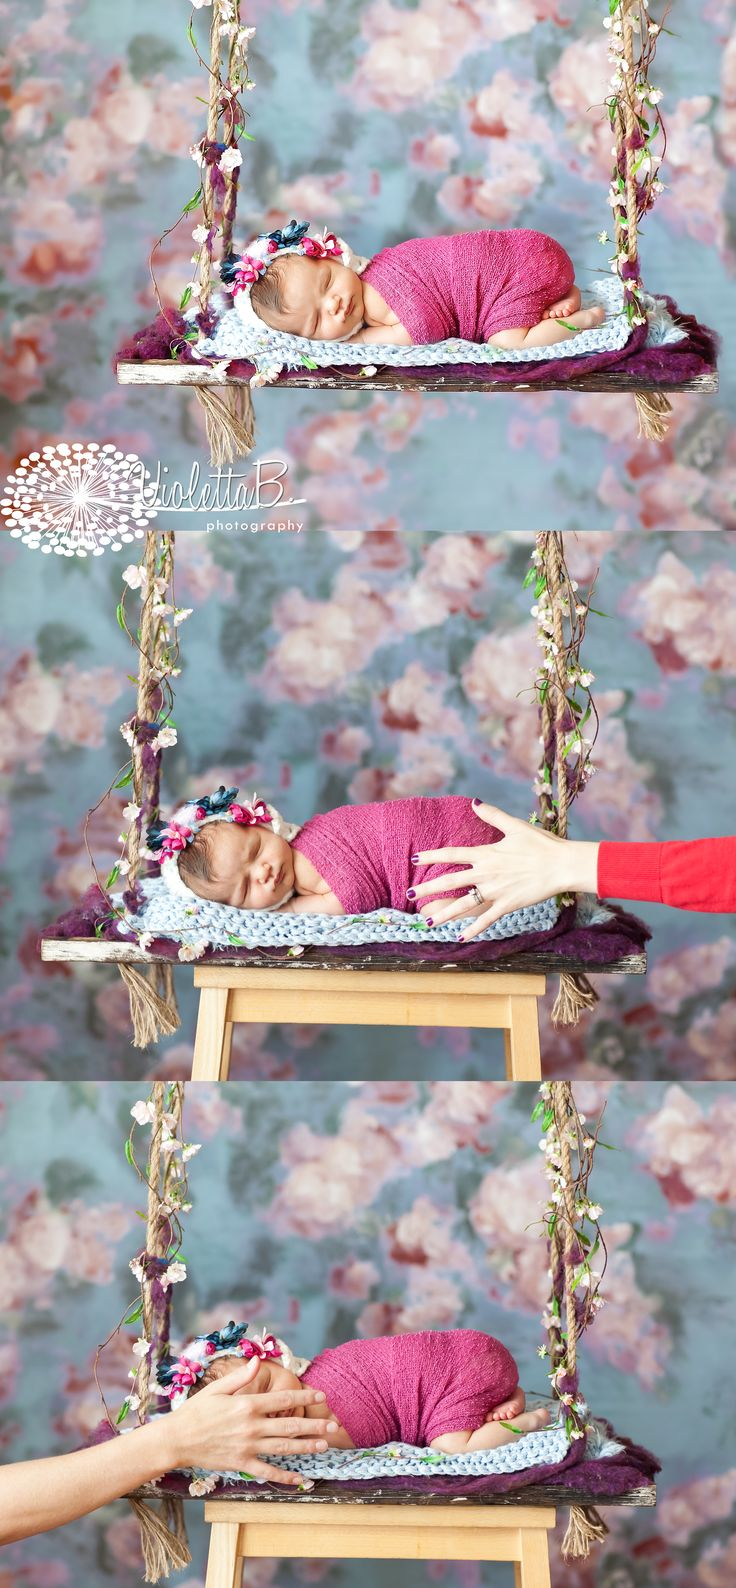 http://www.violettabphotography.com/2016/08/safety-first-cre…born-photography/ Safety First, creative newborn photography!